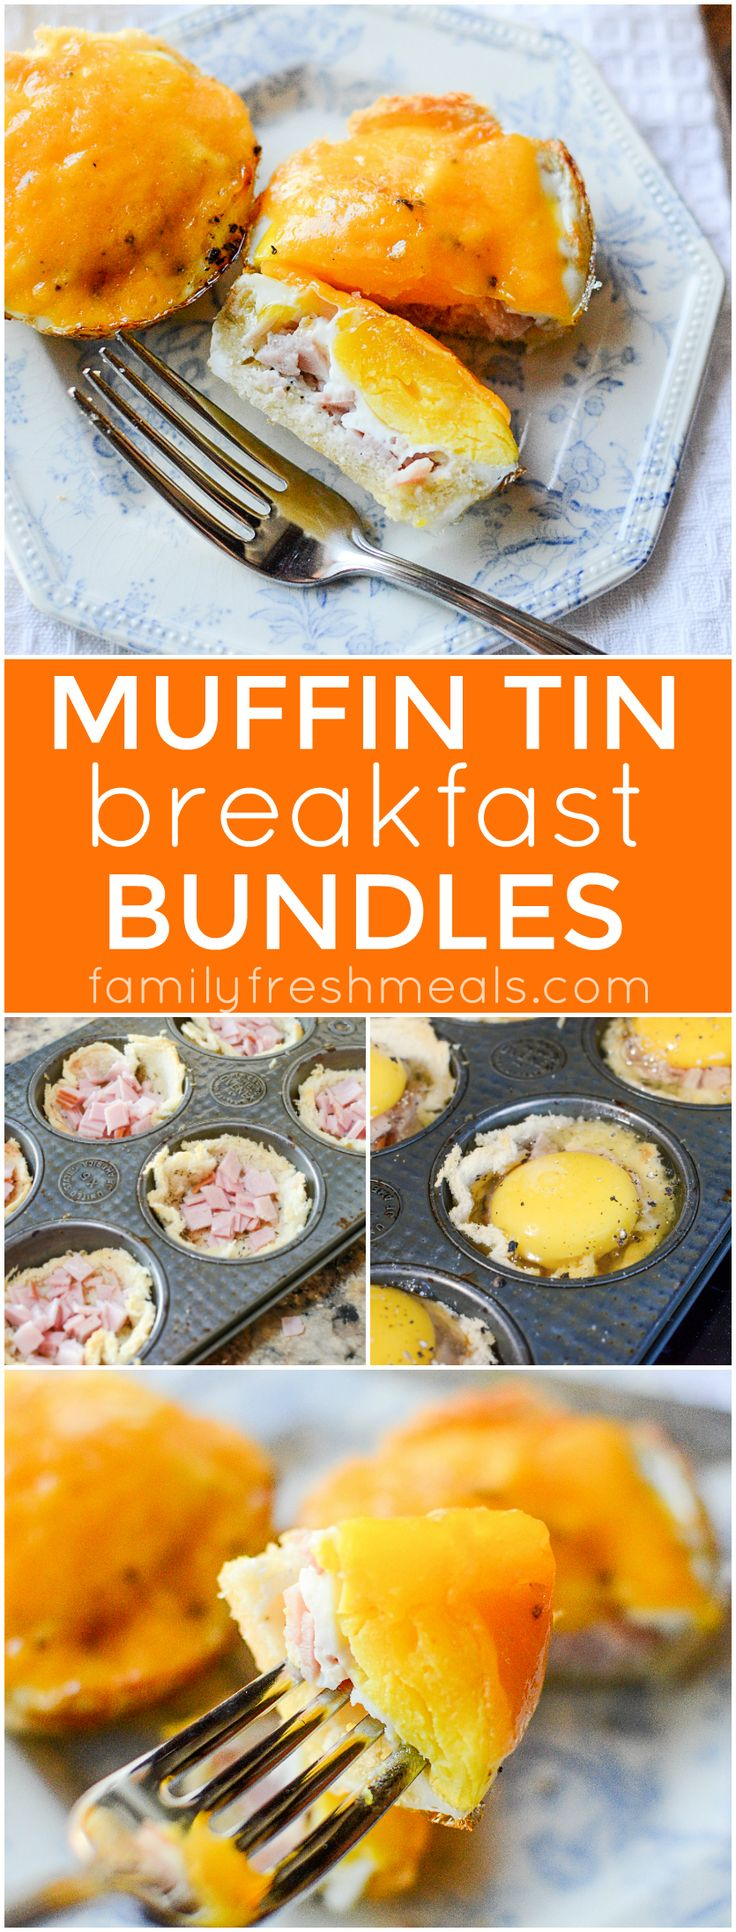 Easy Muffin tin breakfast bundles recipe - Family Fresh Meals